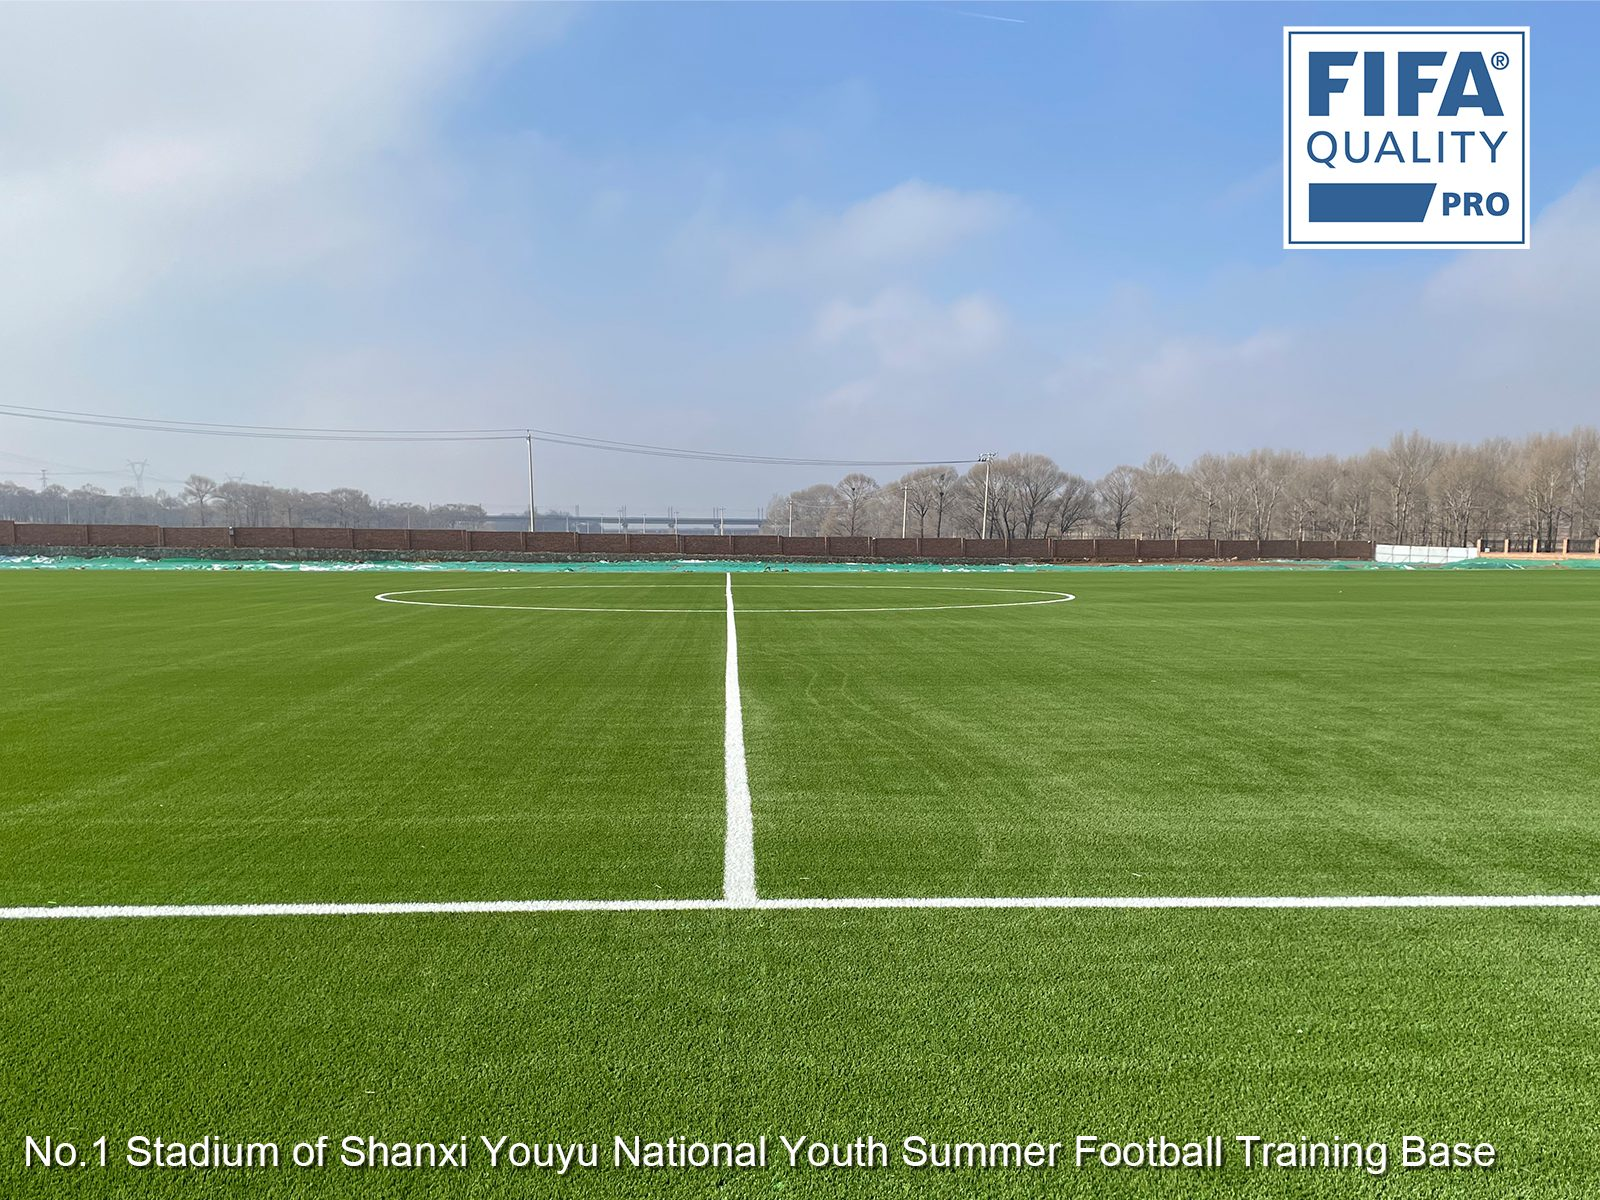 Shanxi Youyu National Youth Summer Football Training Base